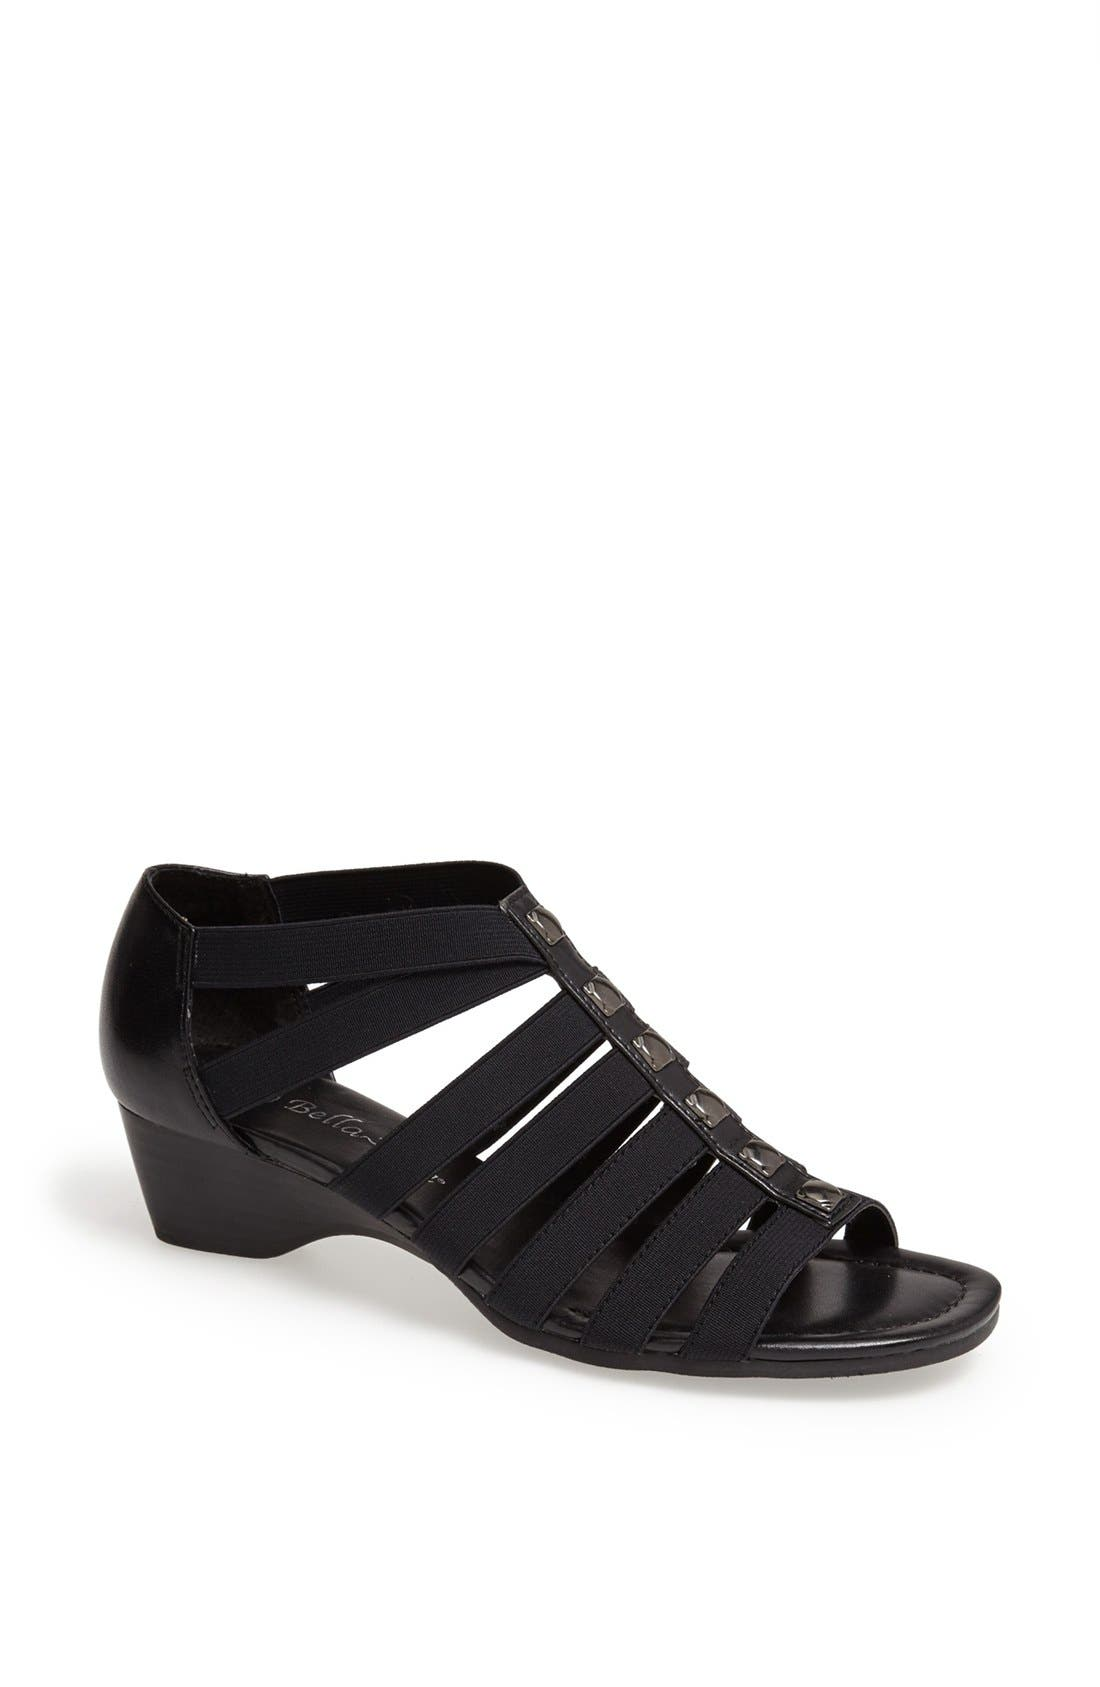 'Paula II' Sandal,                         Main,                         color, Black